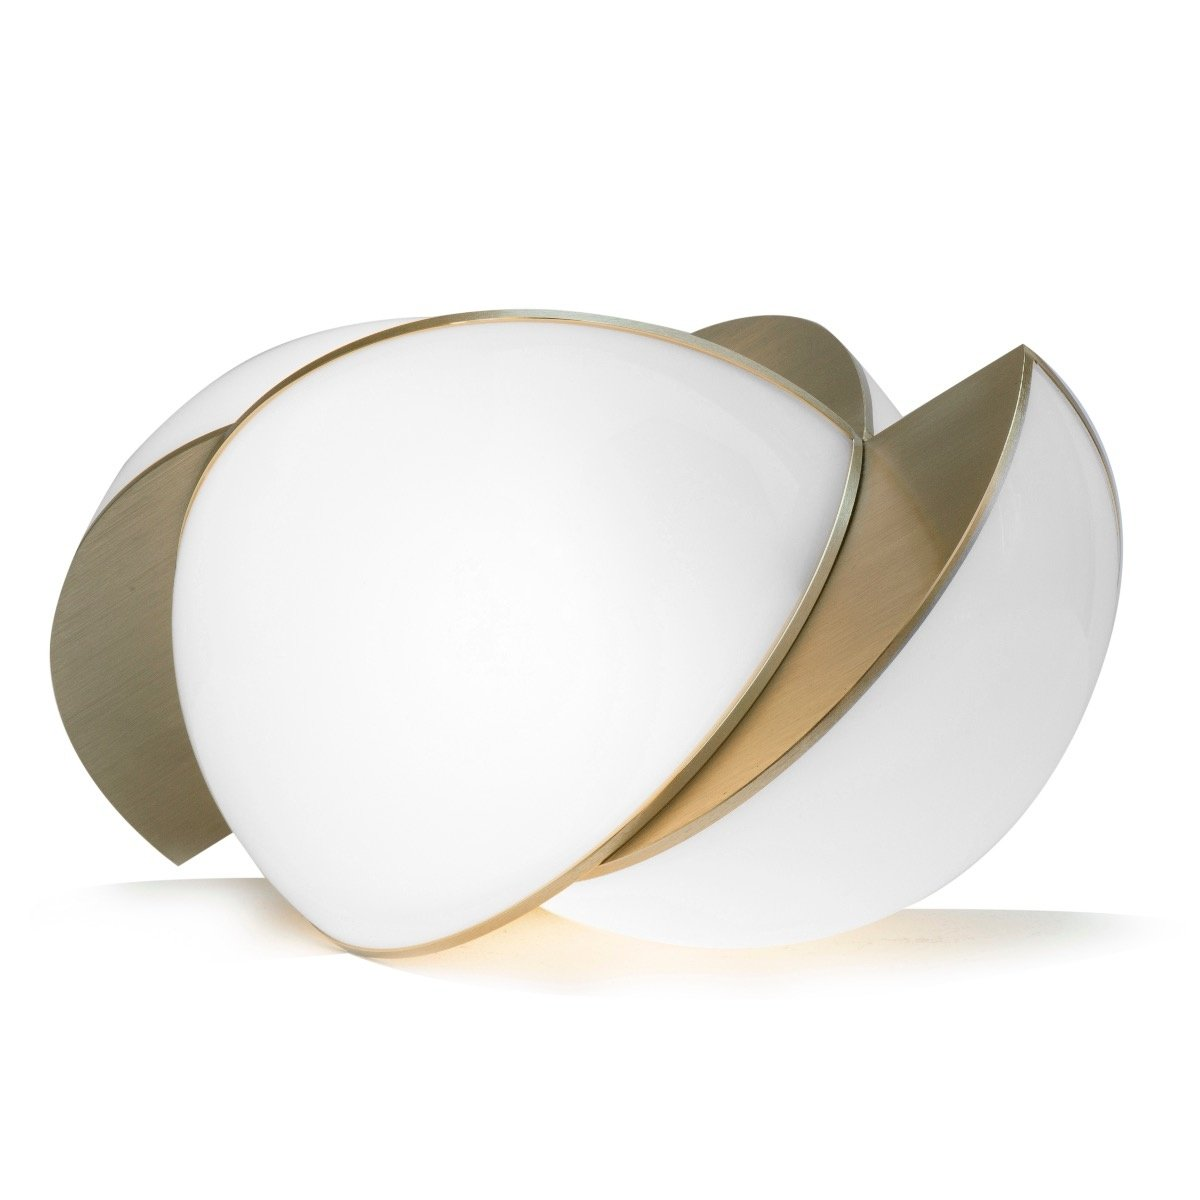 COLLISION LARGE TABLE LIGHT - GOLD